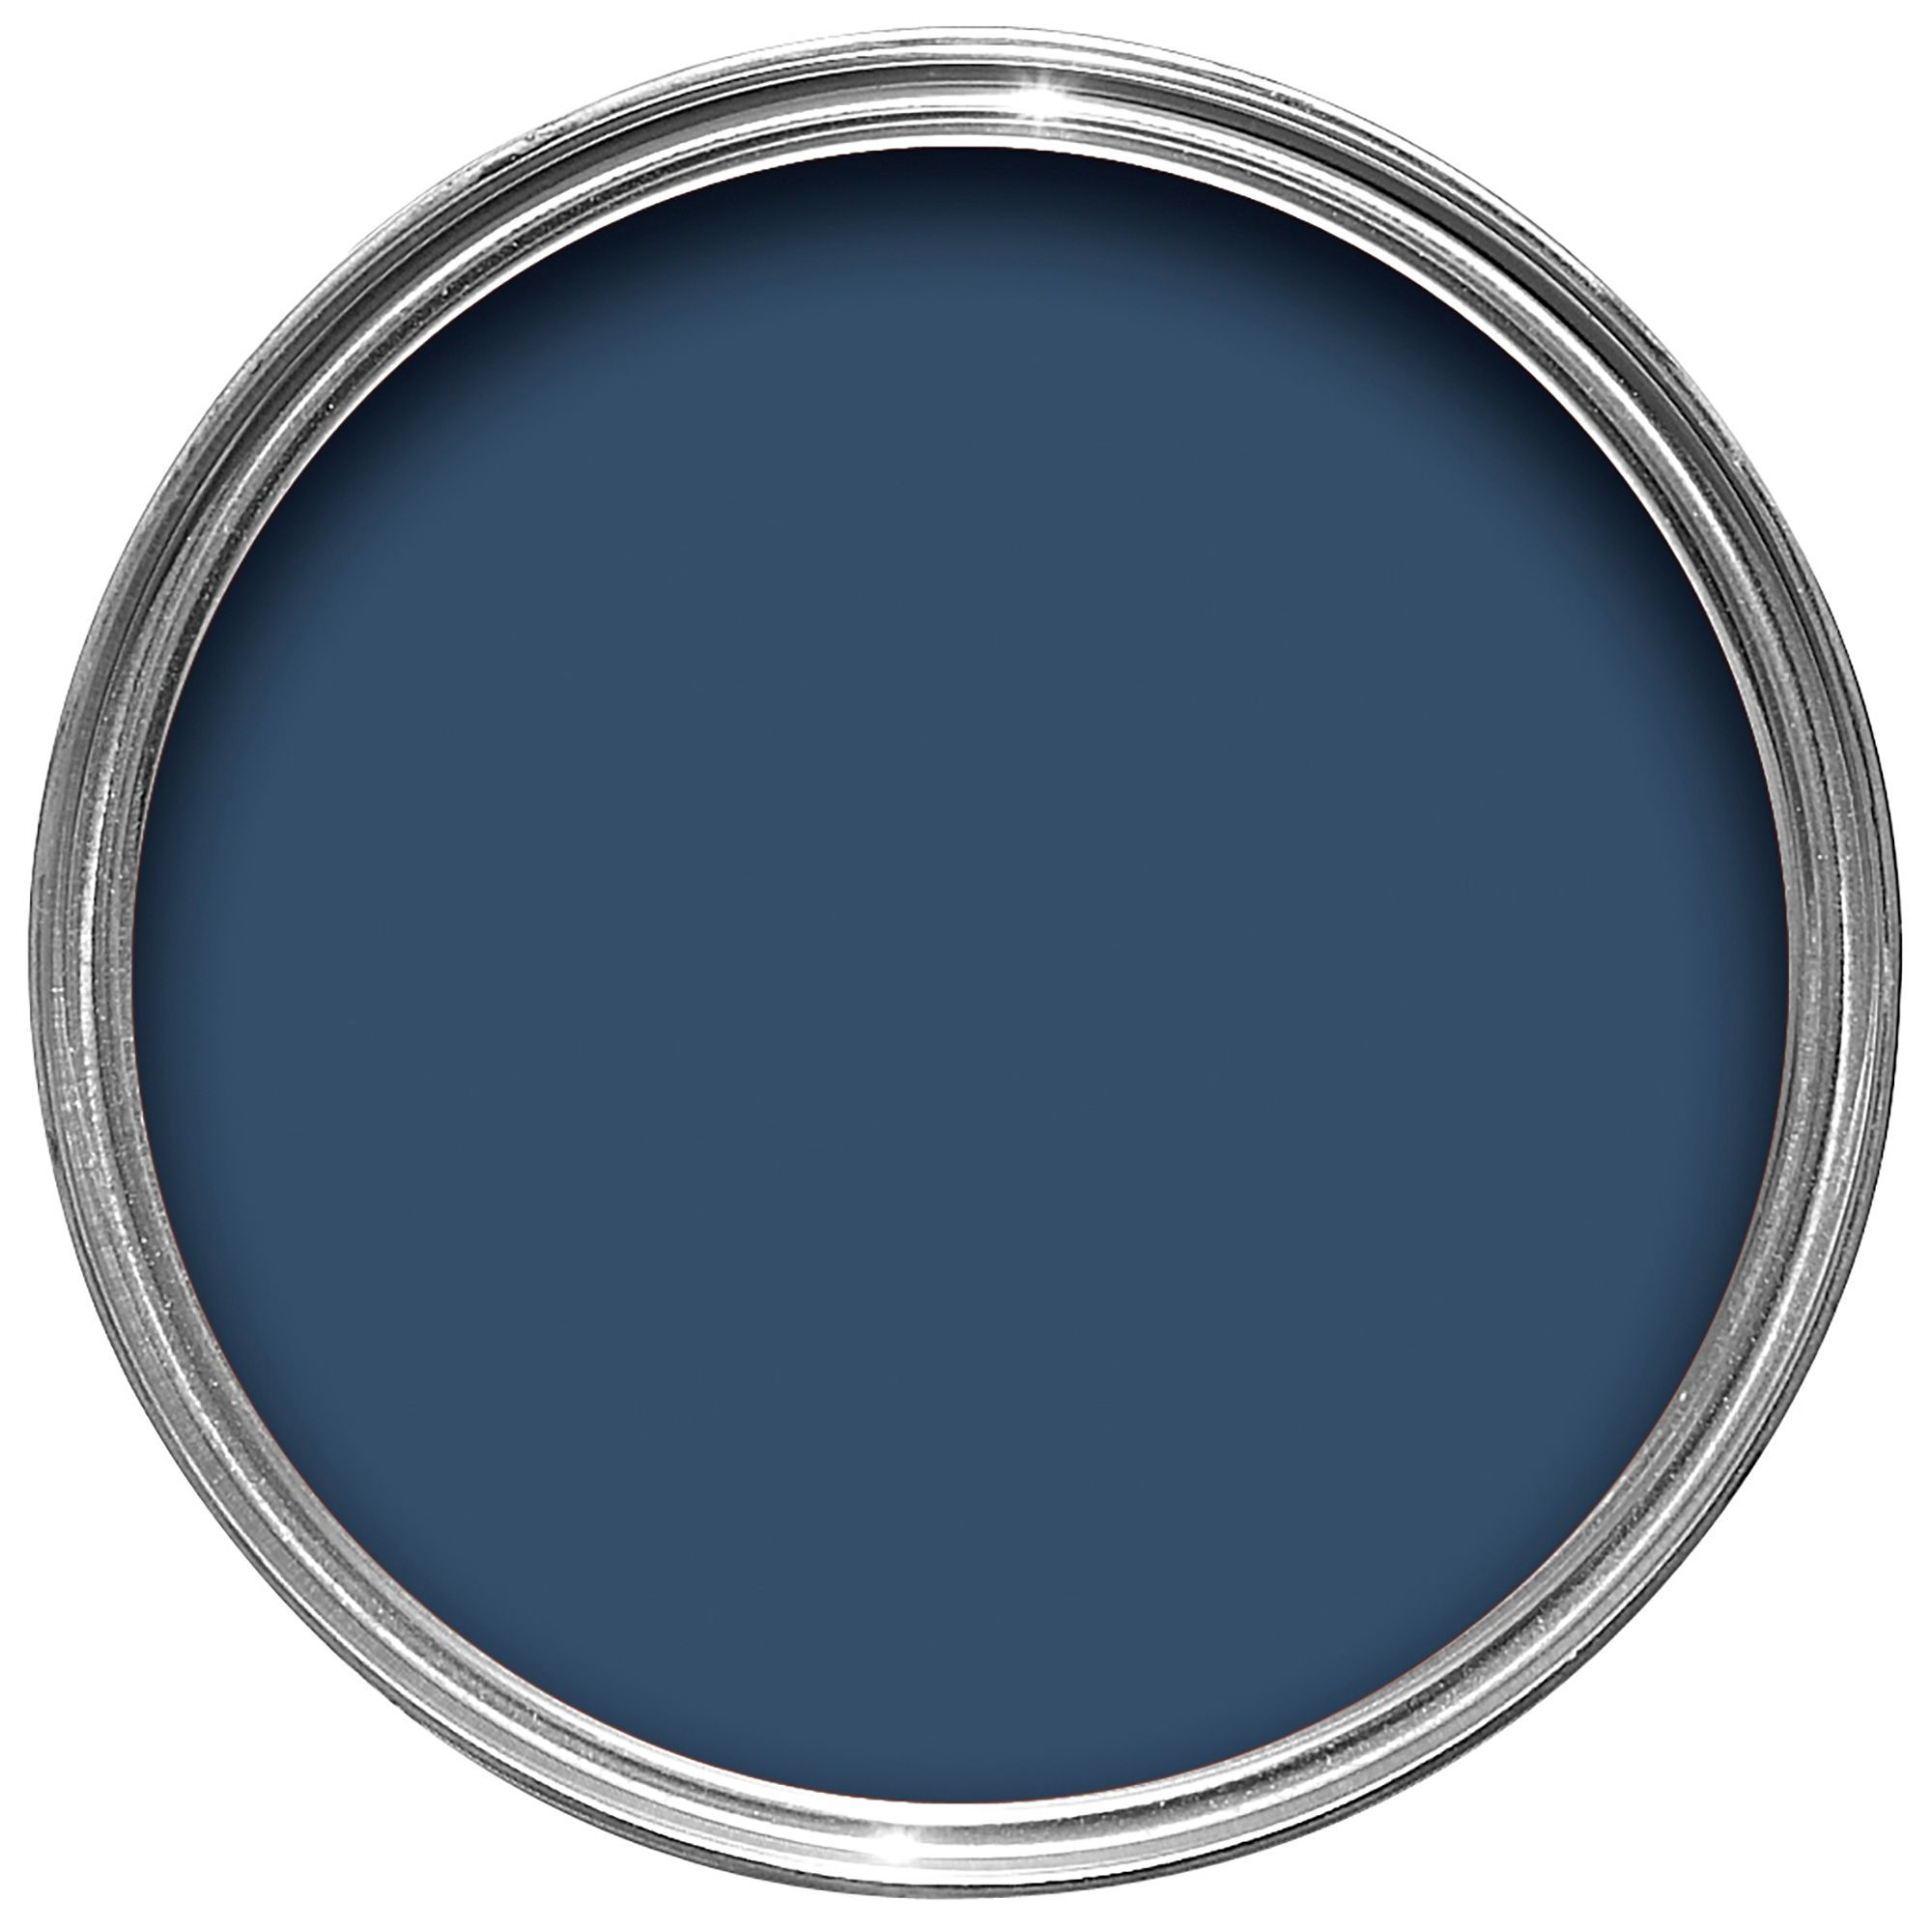 Dulux Weathershield External Oxford Blue Satin Paint 750ml Departments DI